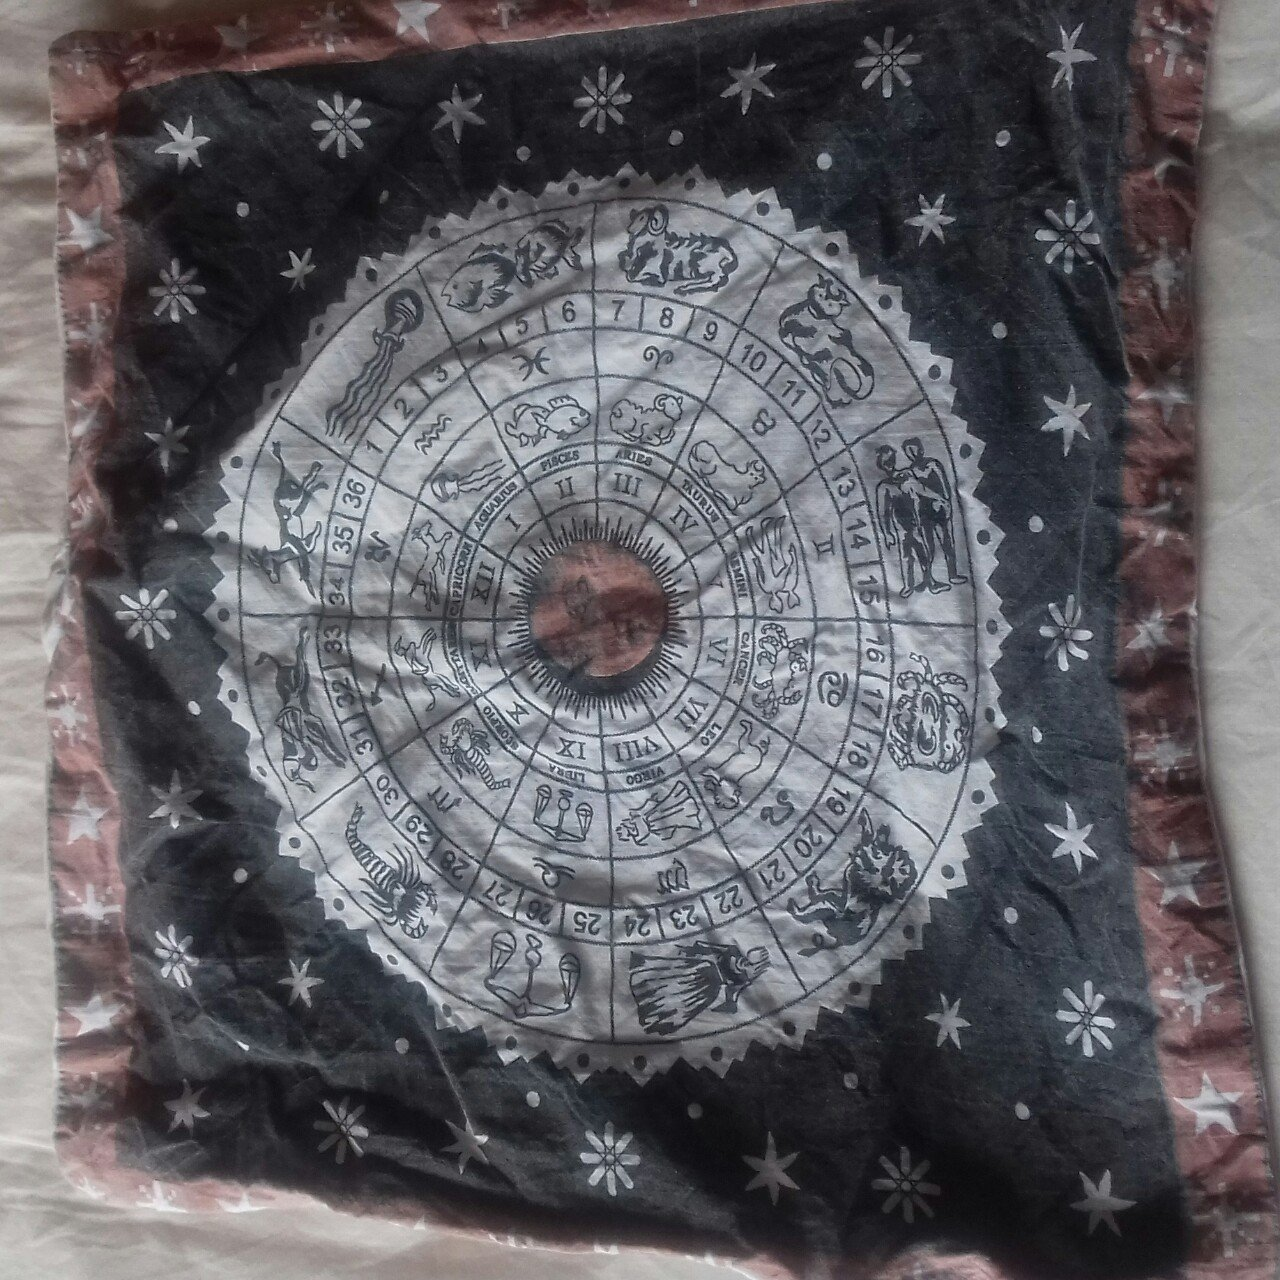 Lovely vintage square rare zodiac astrology cushion cover